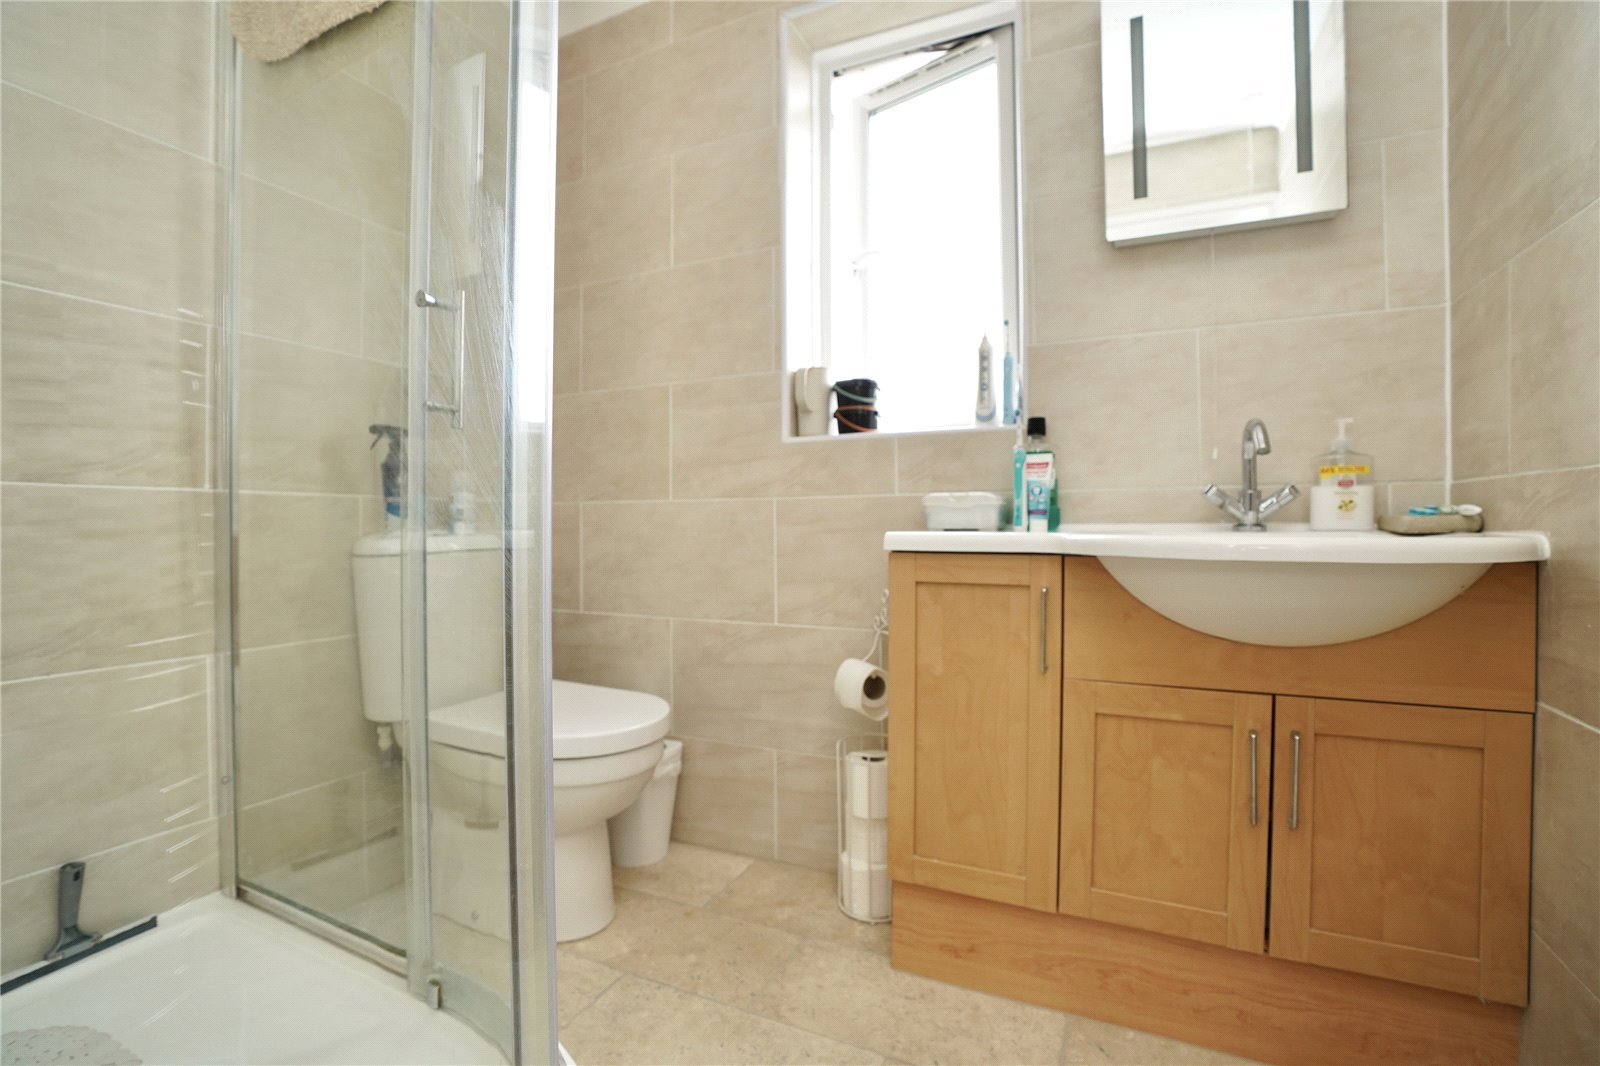 4 bed house for sale in Eaton Socon, PE19 8HU  - Property Image 9